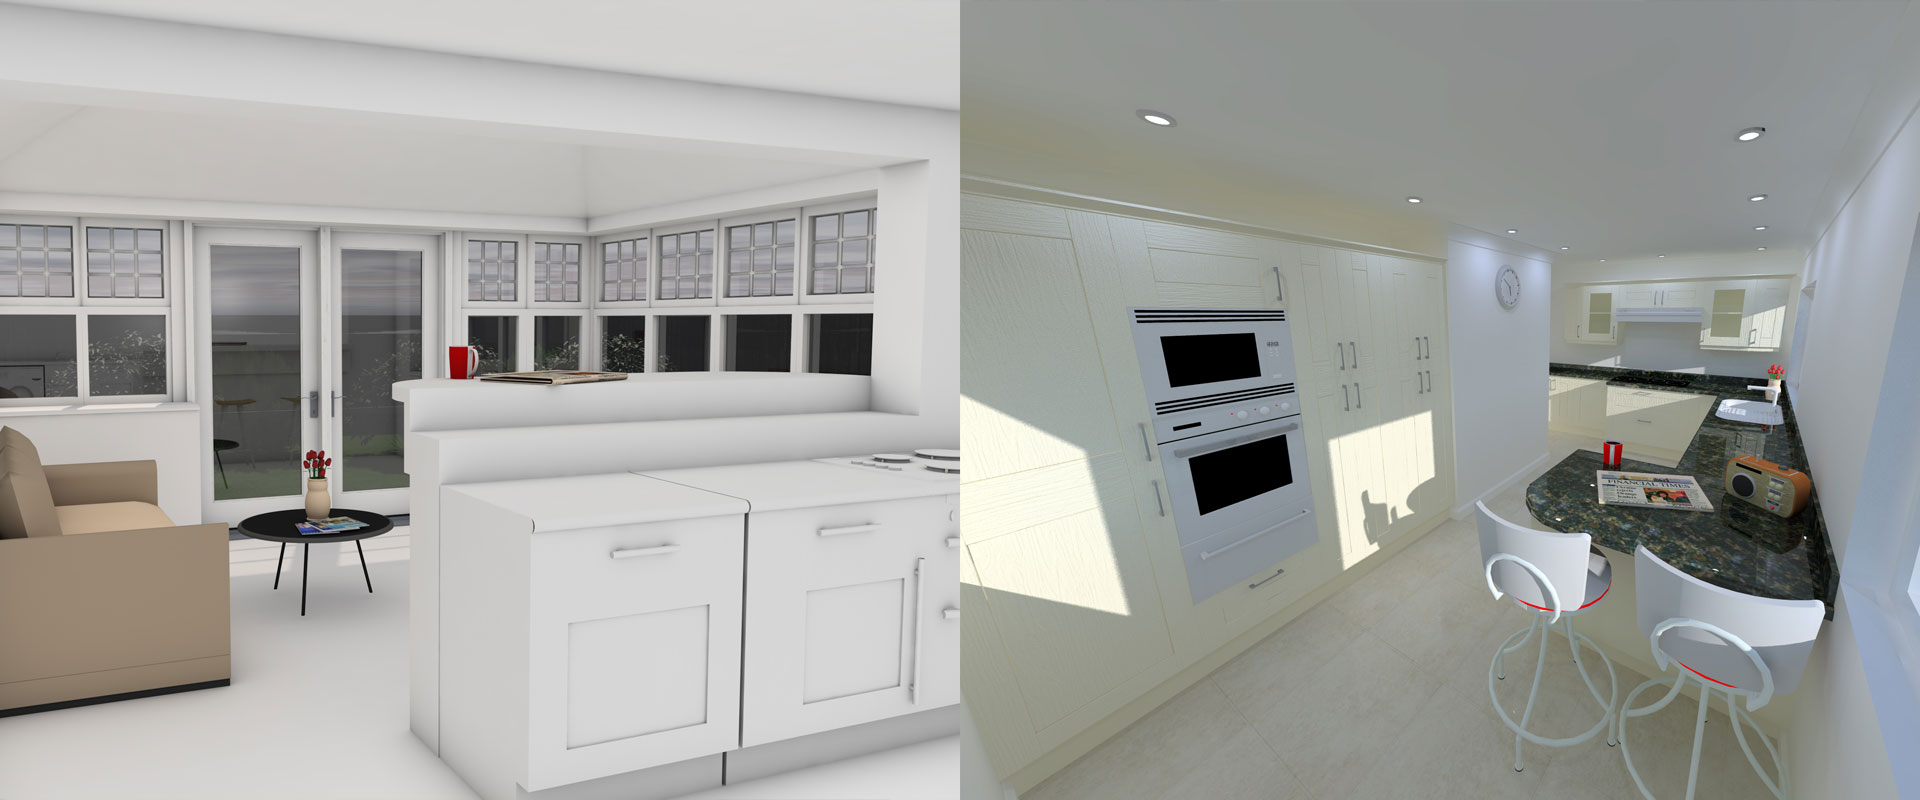 Thistle Kitchen Extension Aberdeen Design